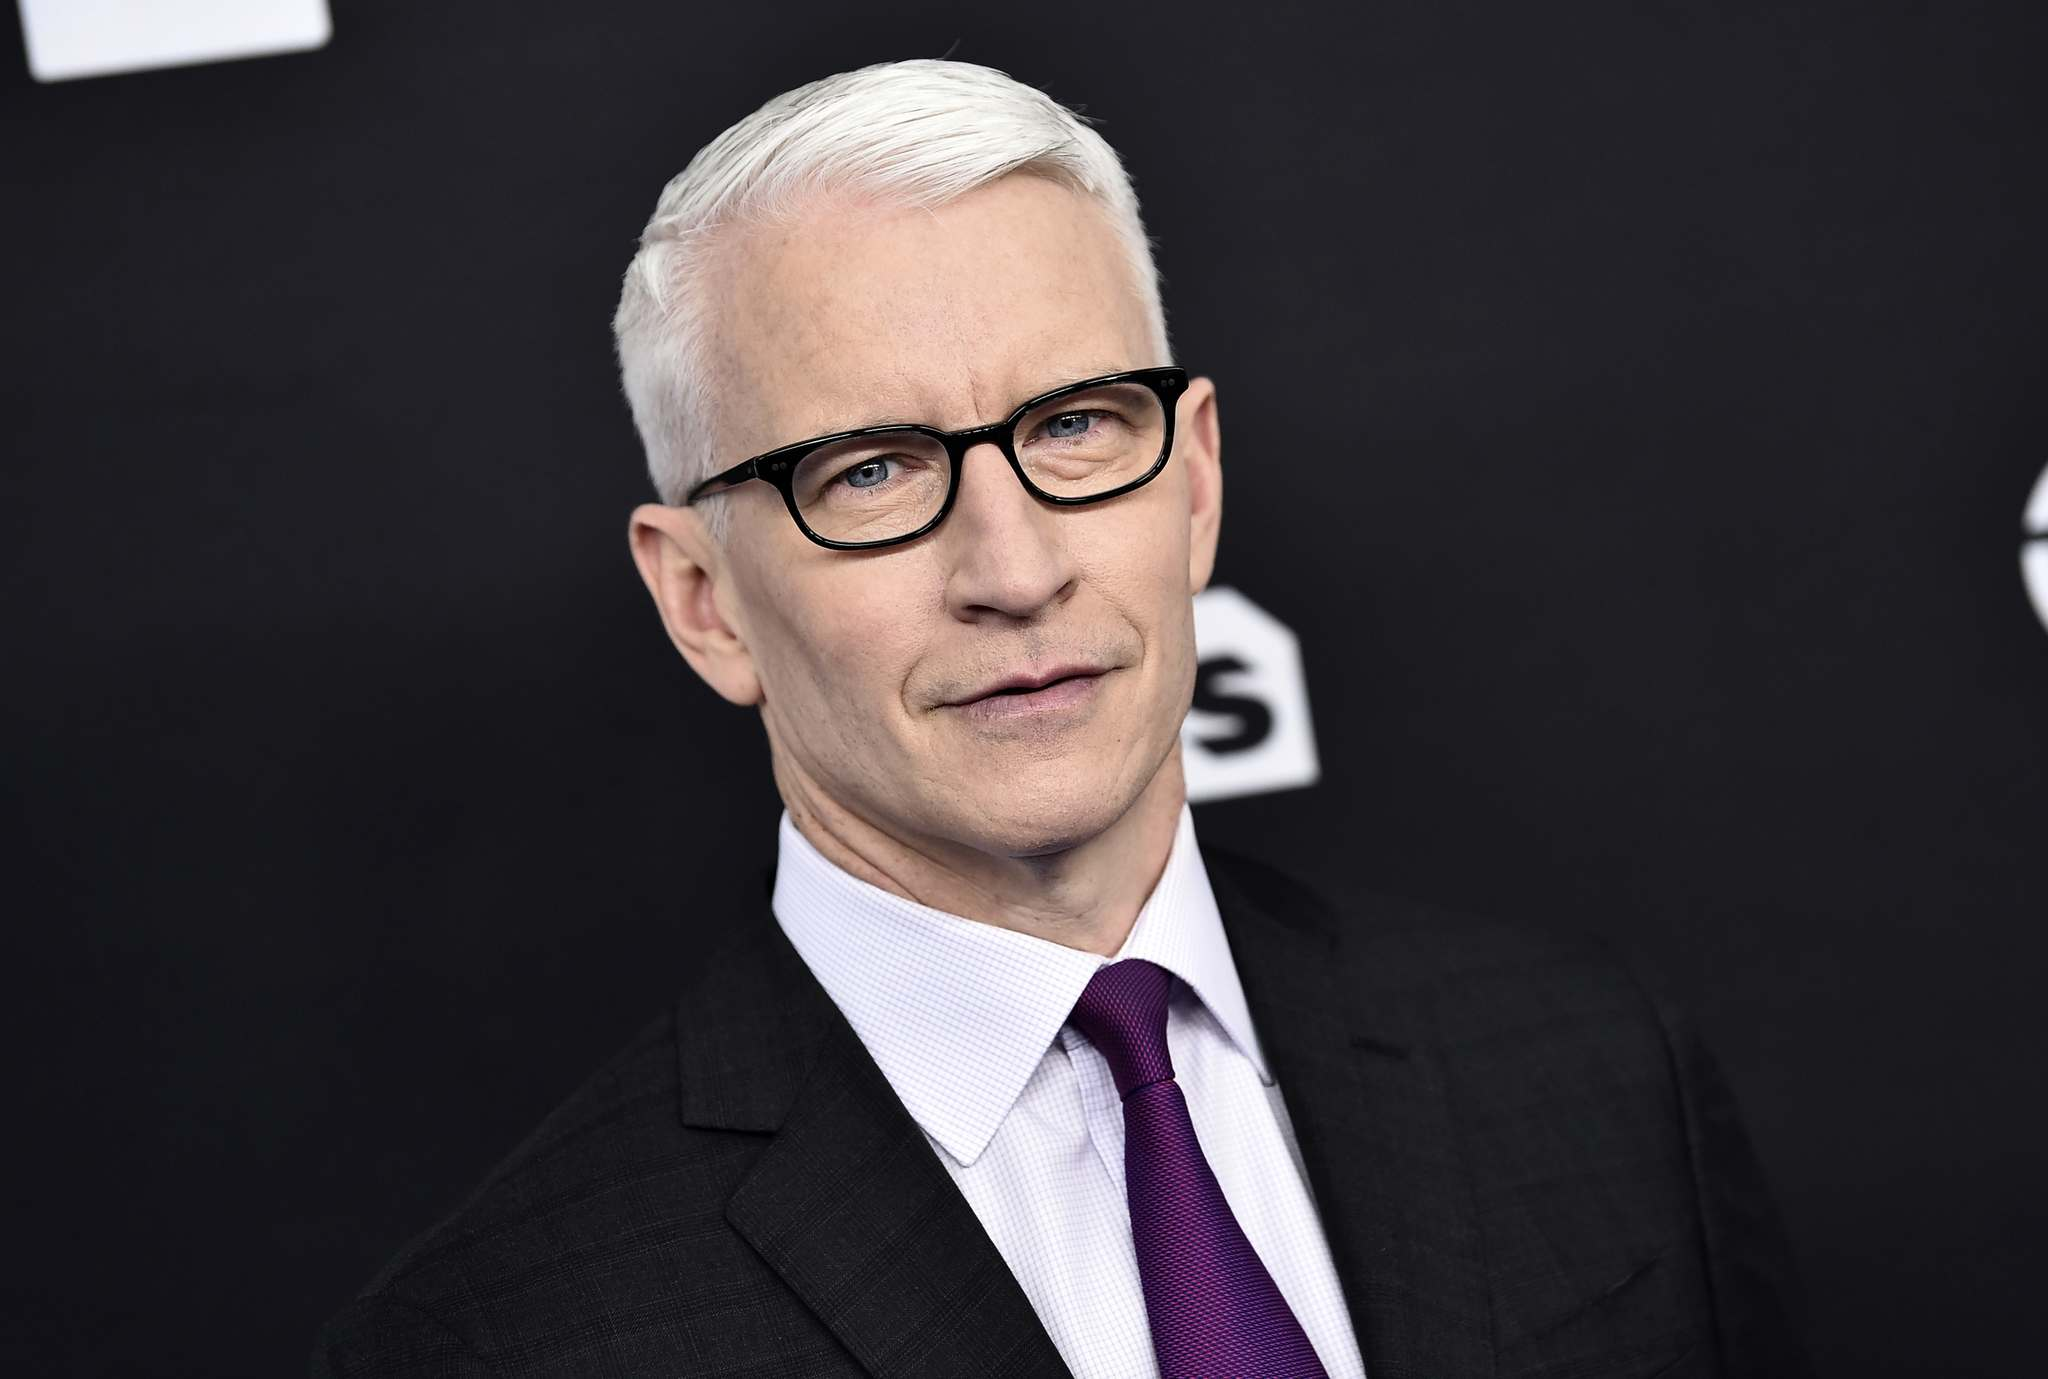 EVAN AGOSTINI / THE ASSOCIATED PRESS FILES</p><p>Author, journalist and CNN news anchor Anderson Cooper will be speaking at the Centennial Concert Hall Sunday evening.</p>